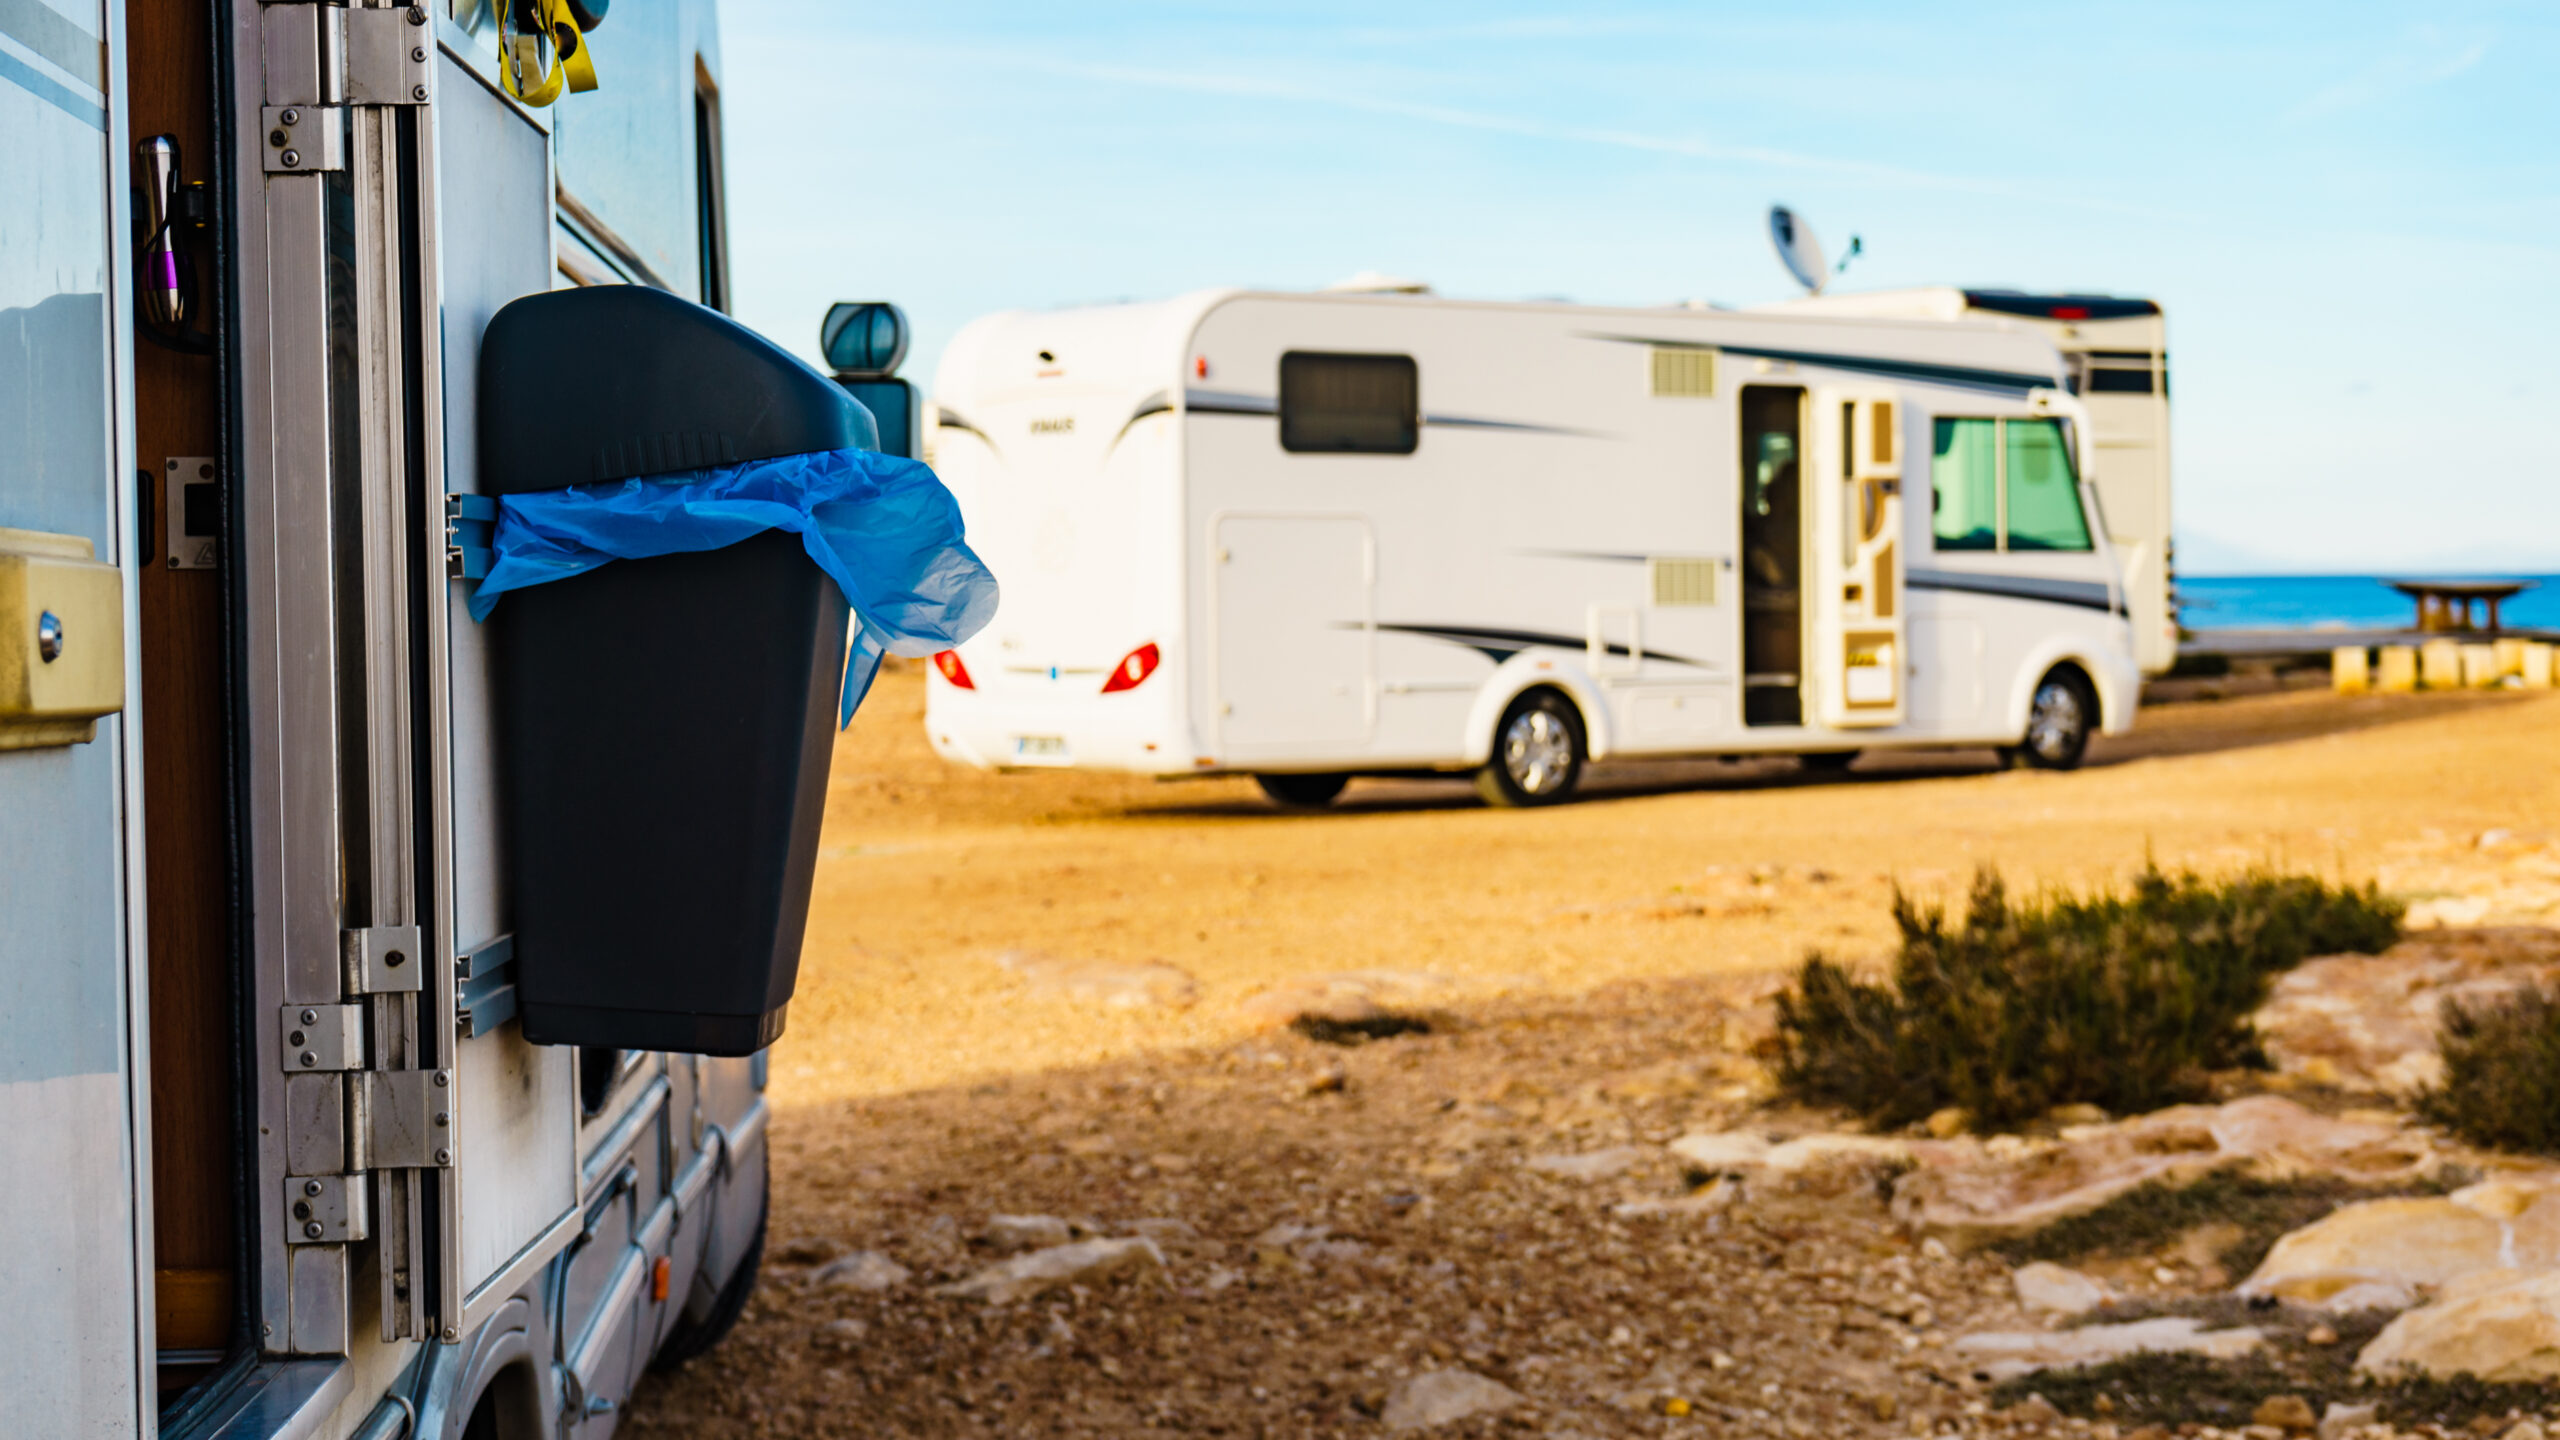 RV trash